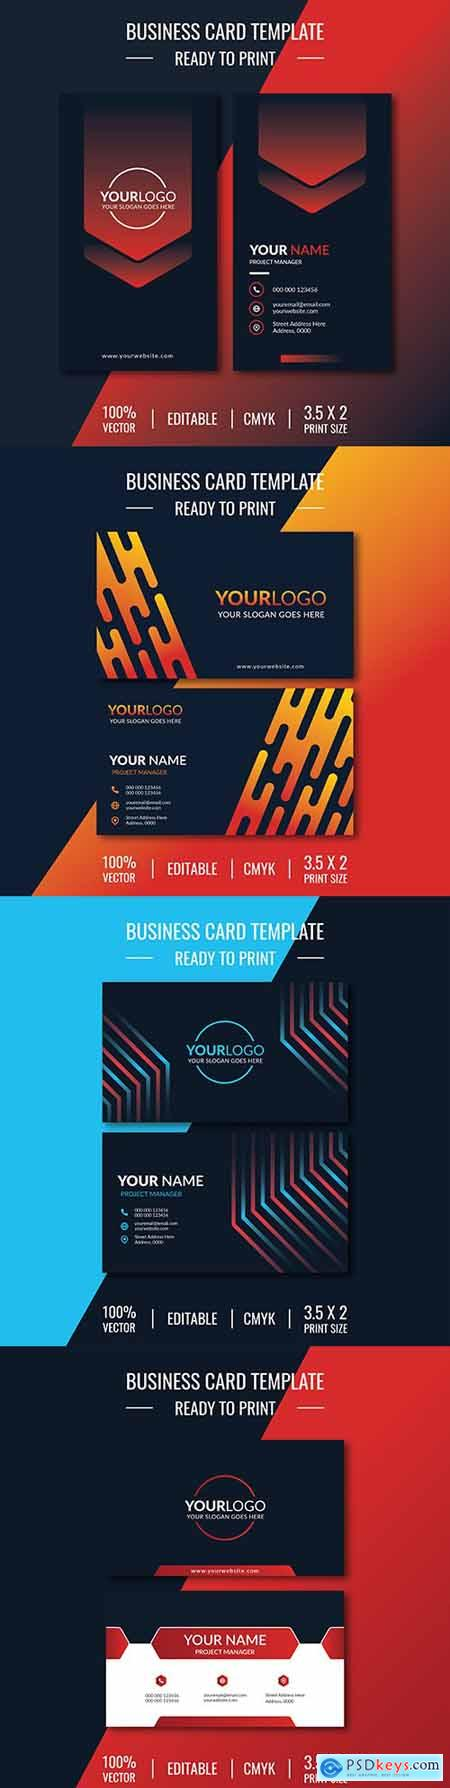 Business card template design on dark background